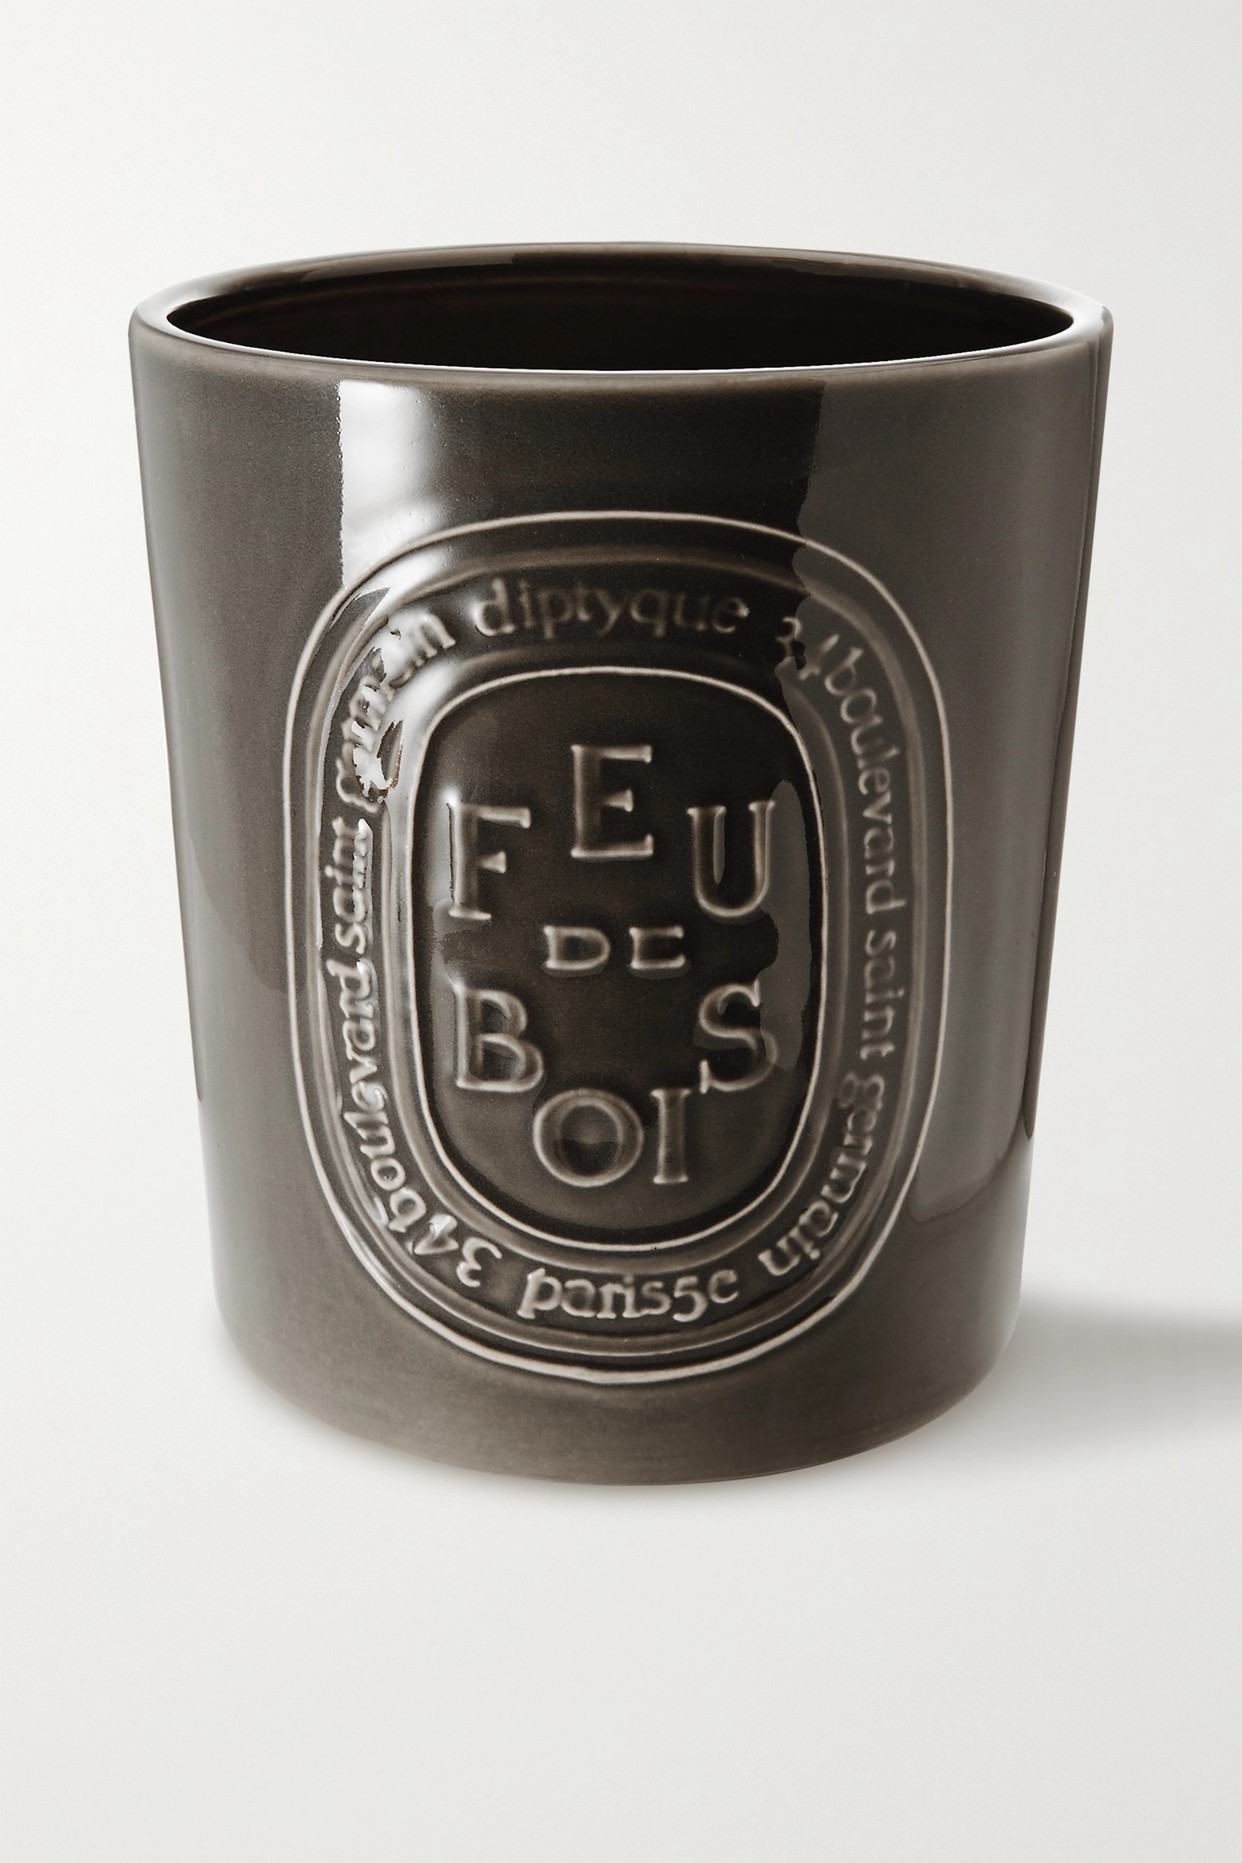 DIPTYQUE - Feu De Bois Scented Candle, 1500g - Gray - one size